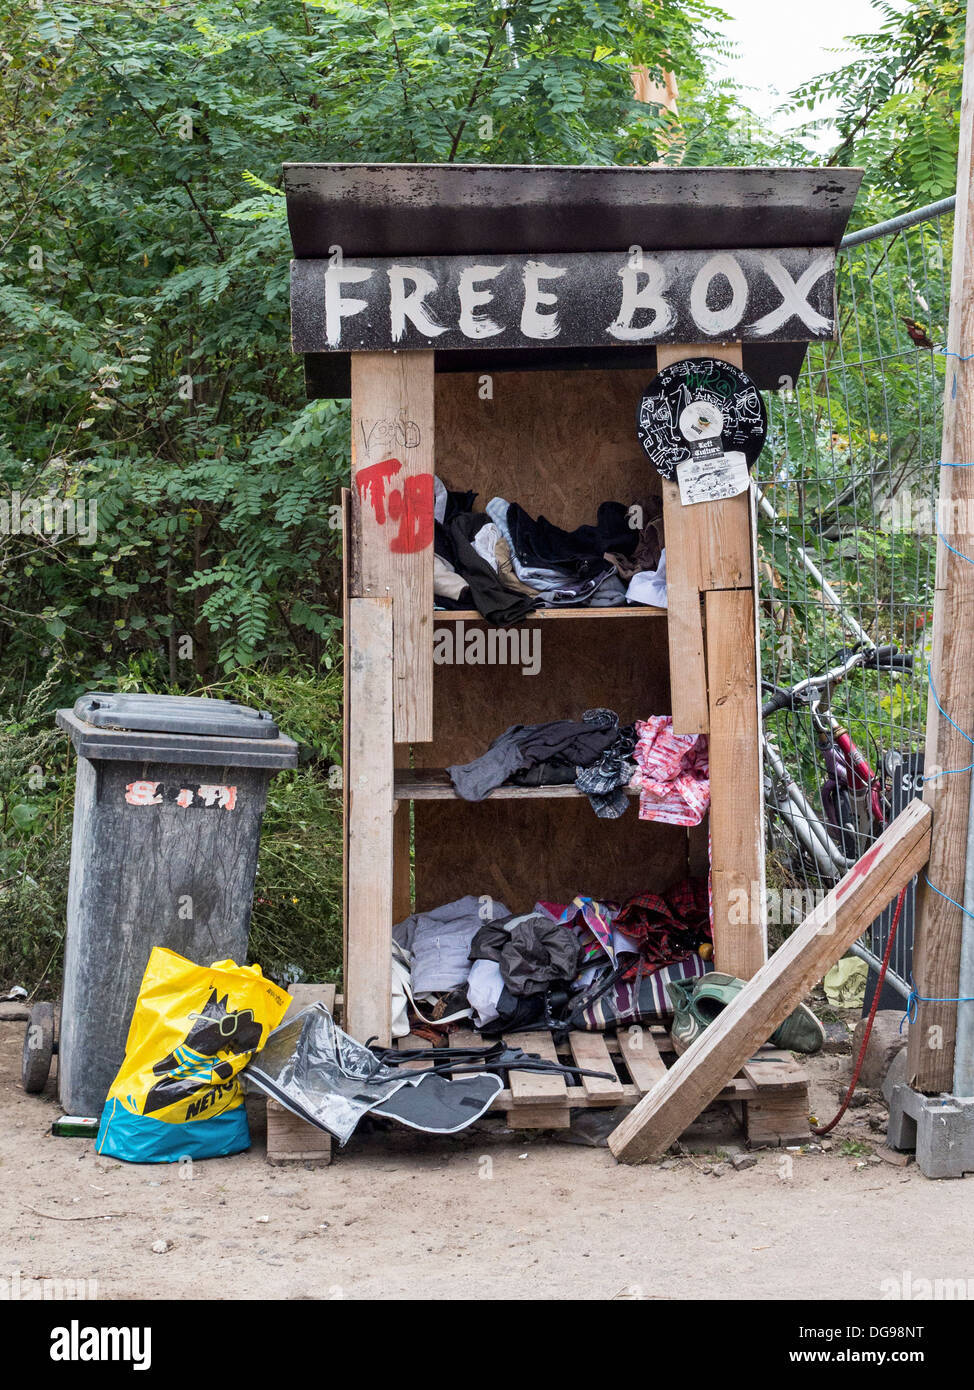 Free box for donations.Squatters set up informal tented community using recycled materials to build homes and gardens  - Berlin - Stock Image